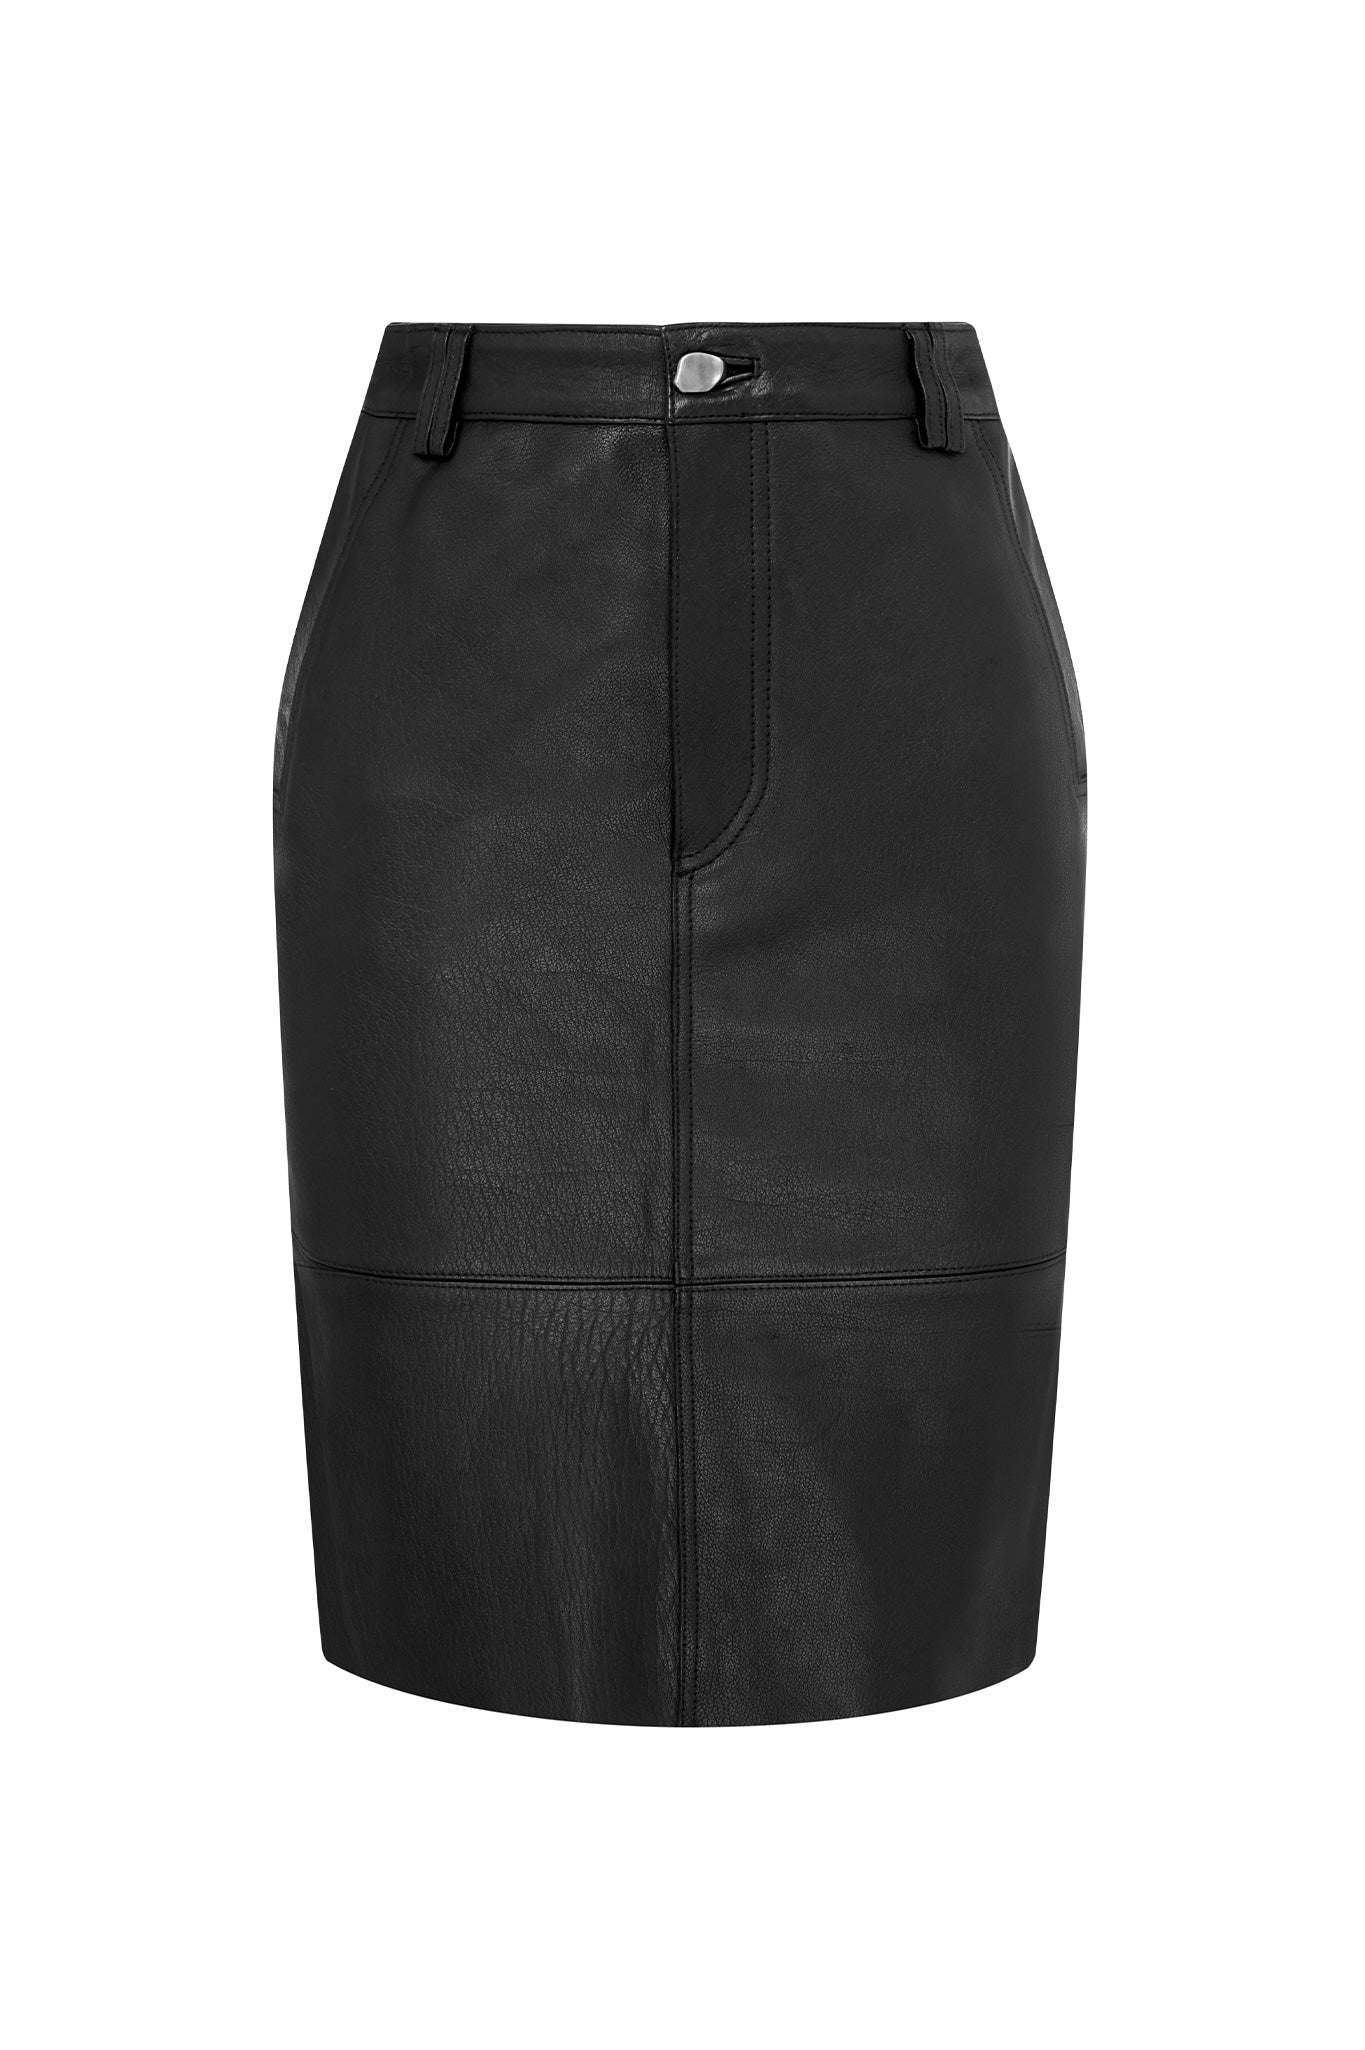 Amelia Skirt Product View